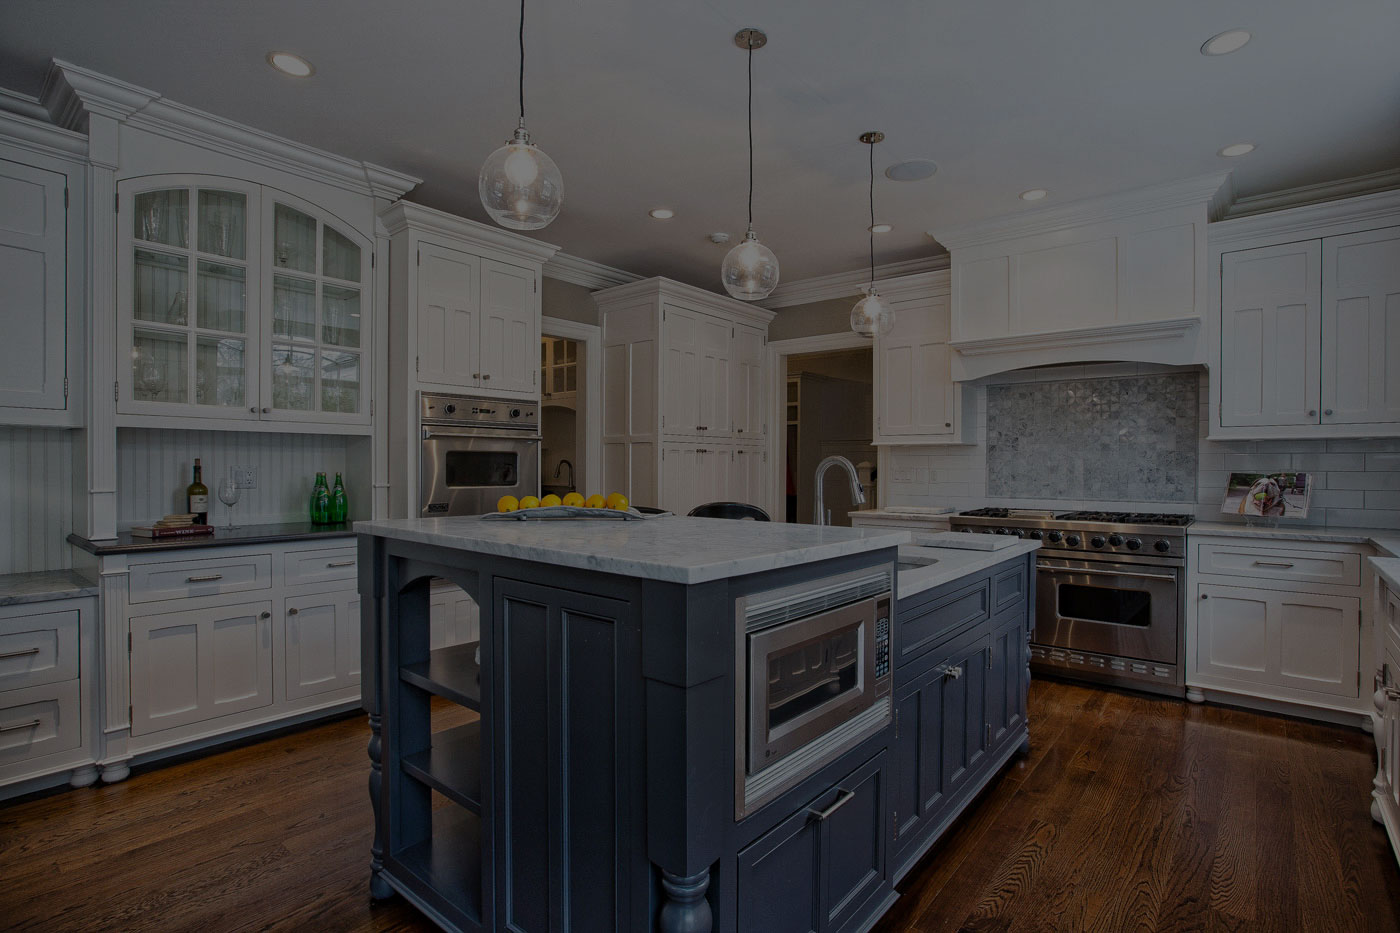 maria-matluck-kitchen-designer-remodeling-connecticut-0